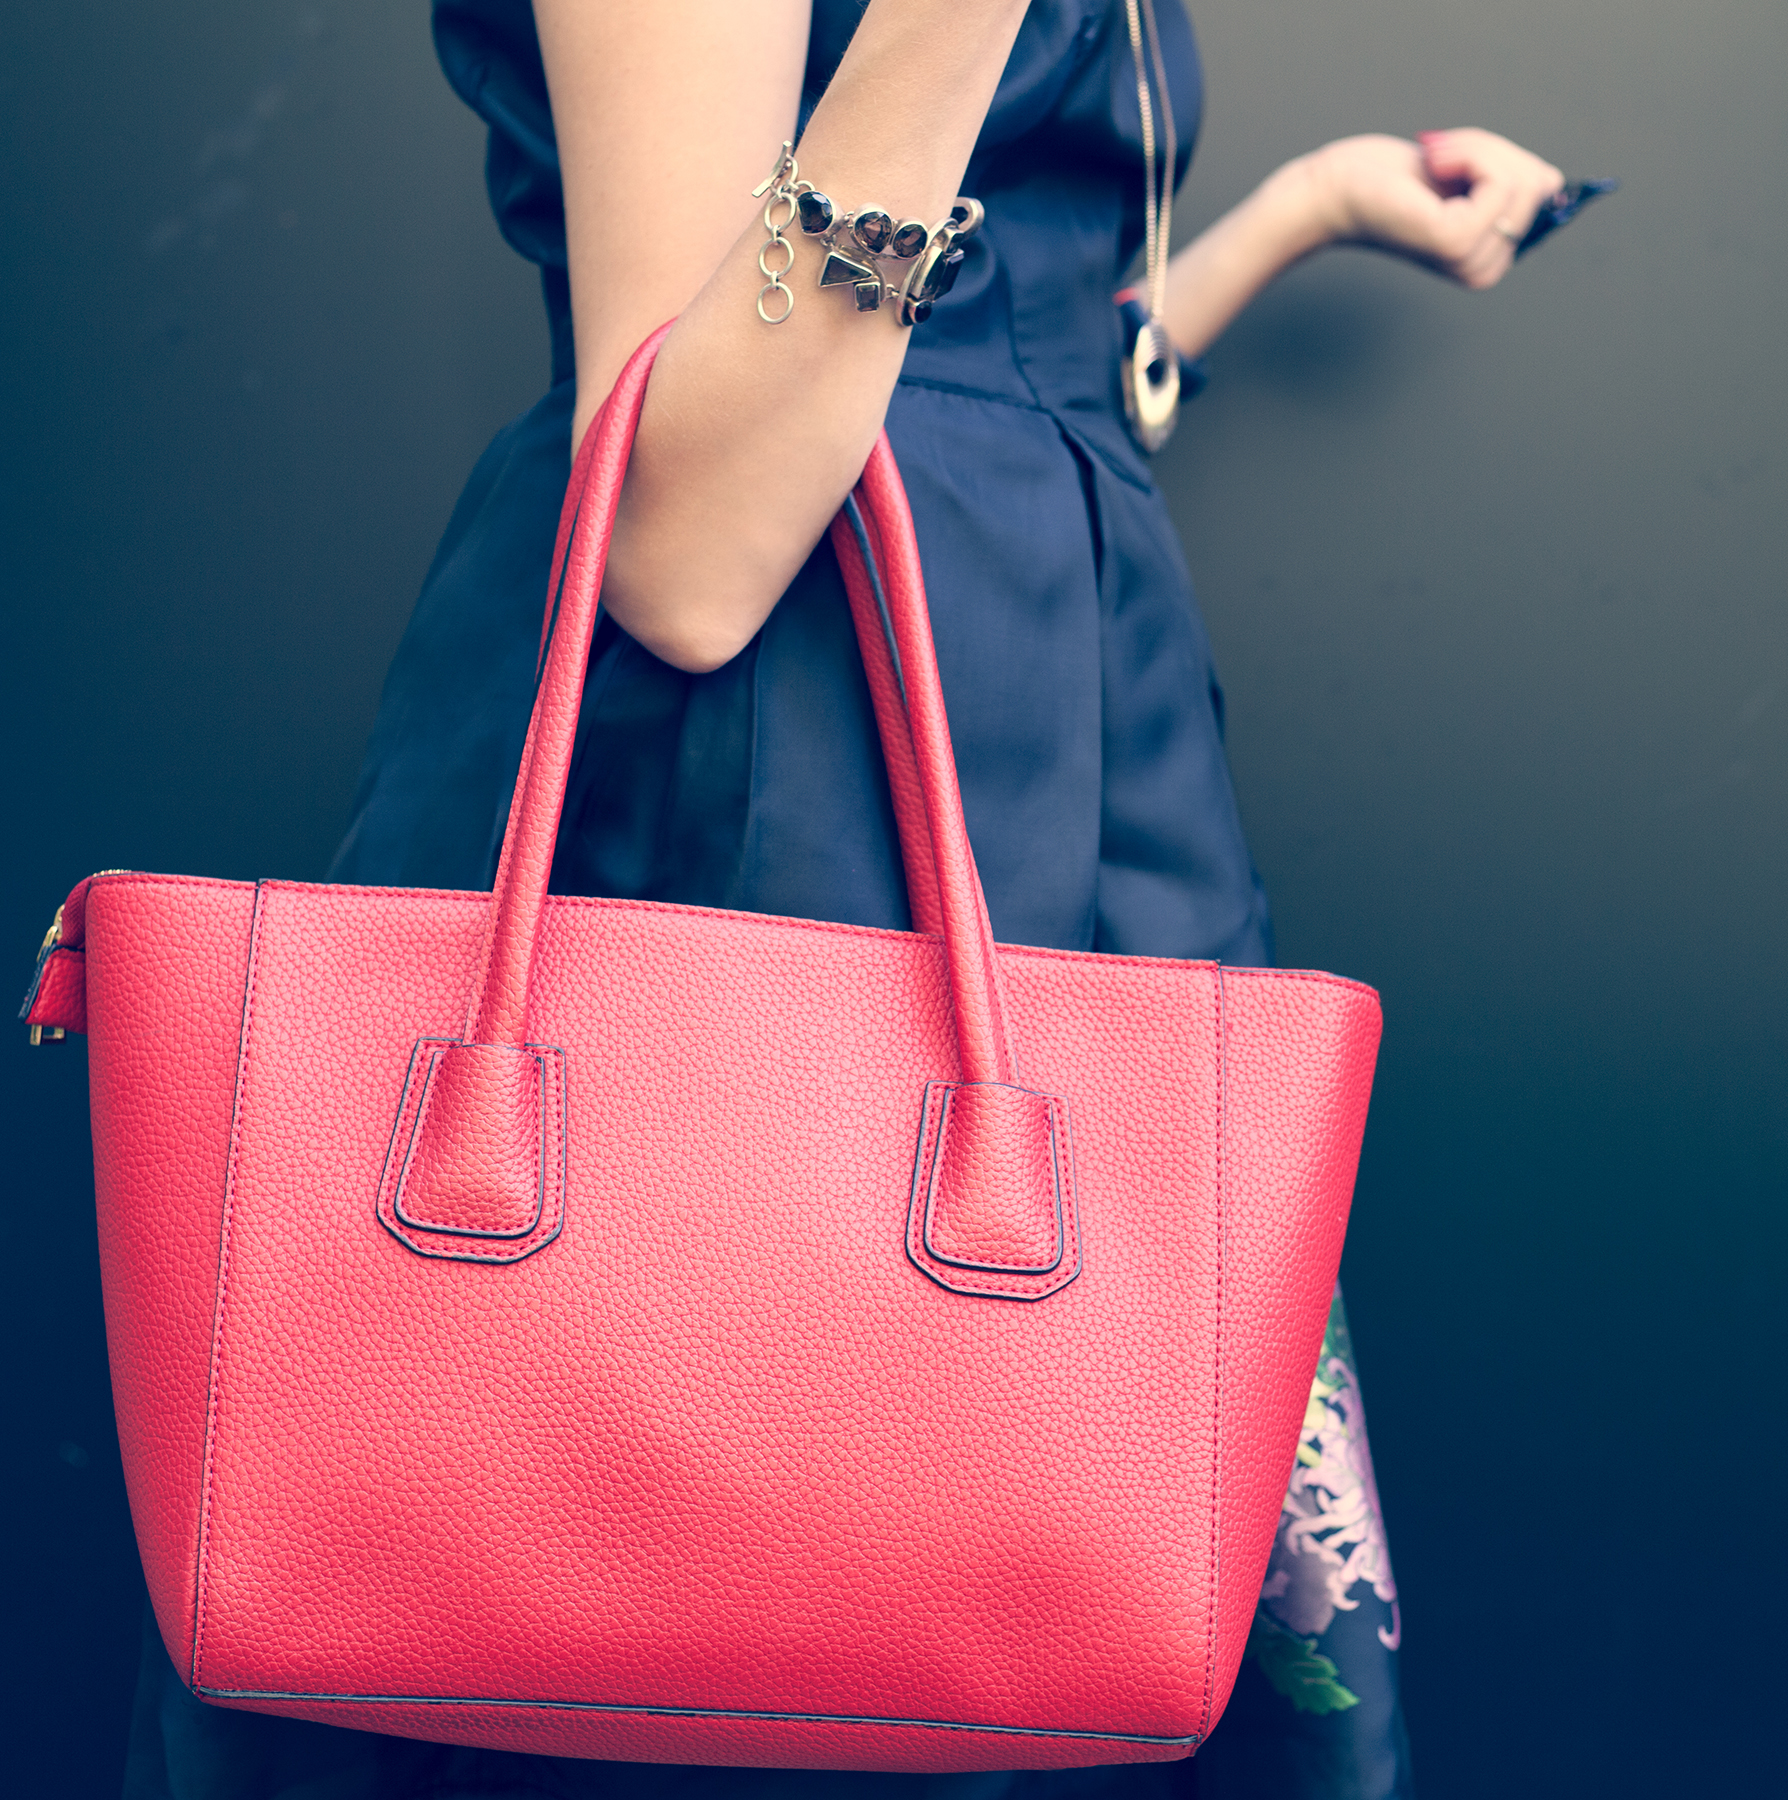 Woman holding red purse